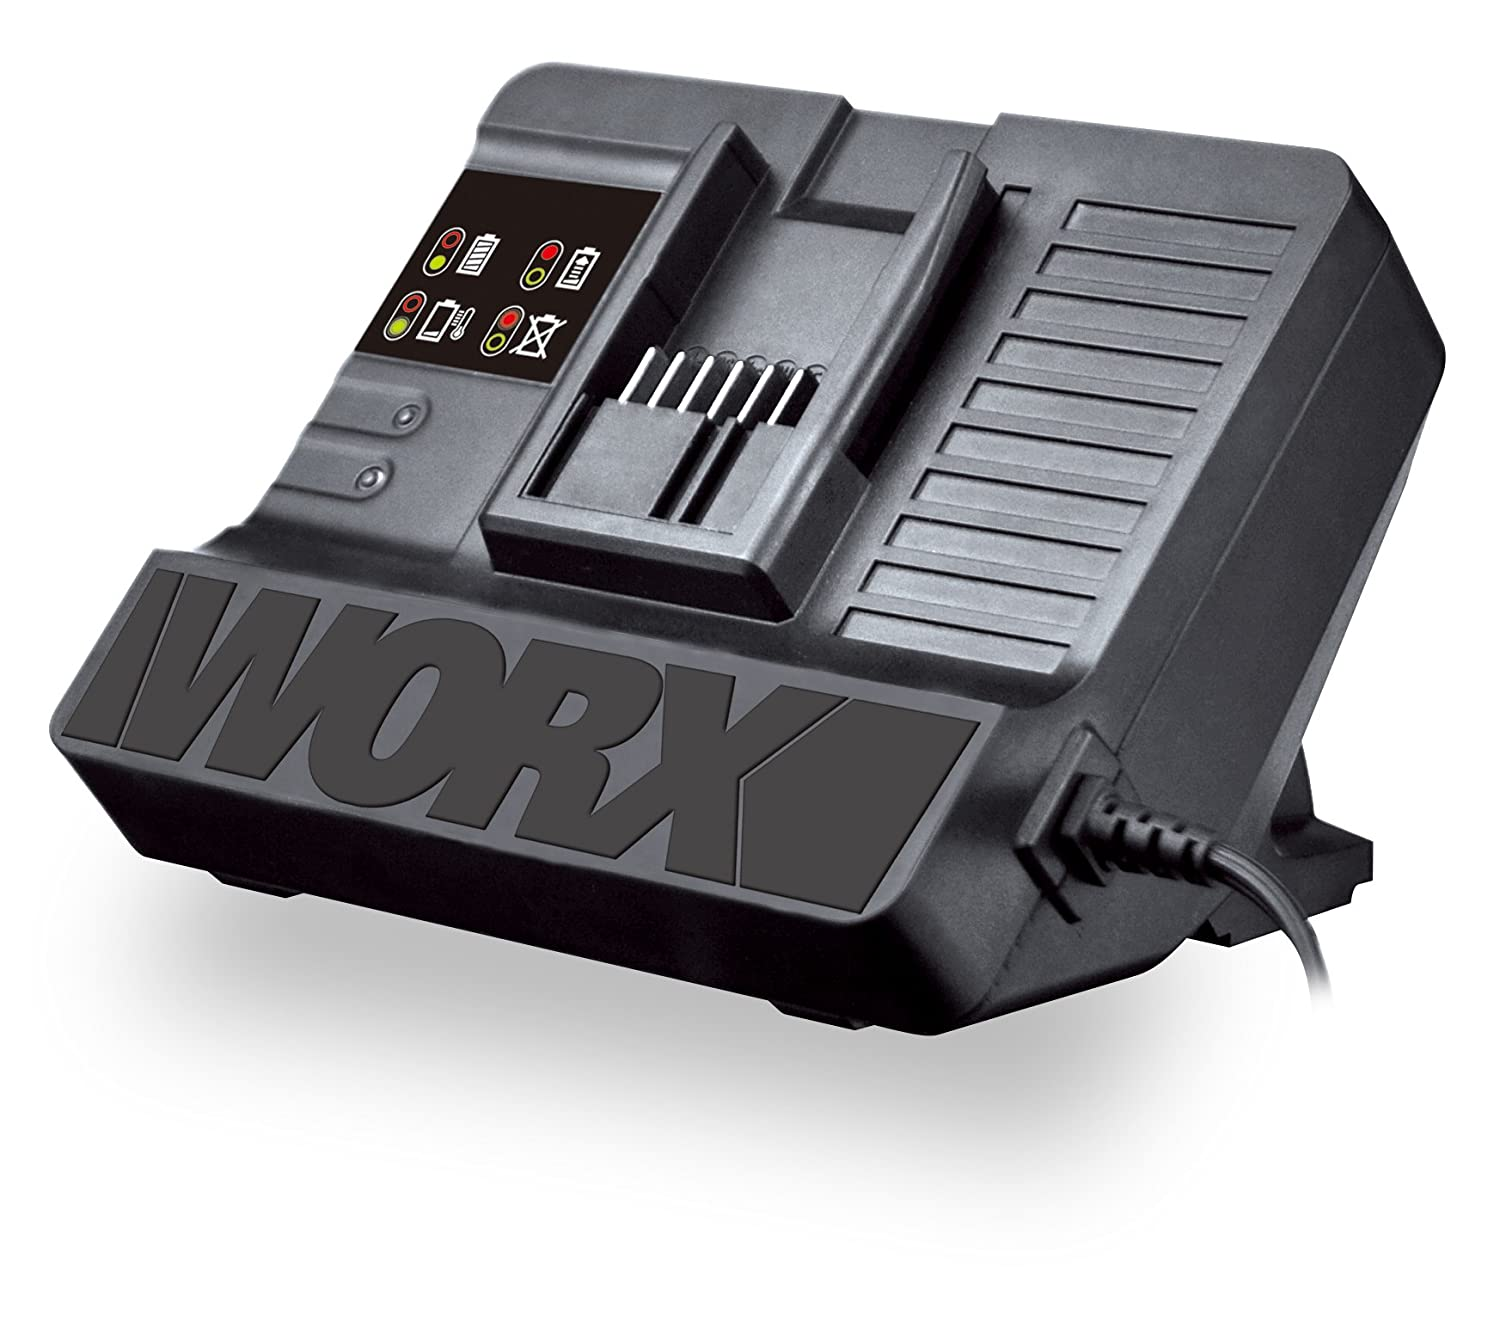 WORX WA3847 20-Volt Lithium Quick Charger for use with WORX 18V or 20V Batteries (2.0Ah, 4.0Ah, or 6.0Ah)